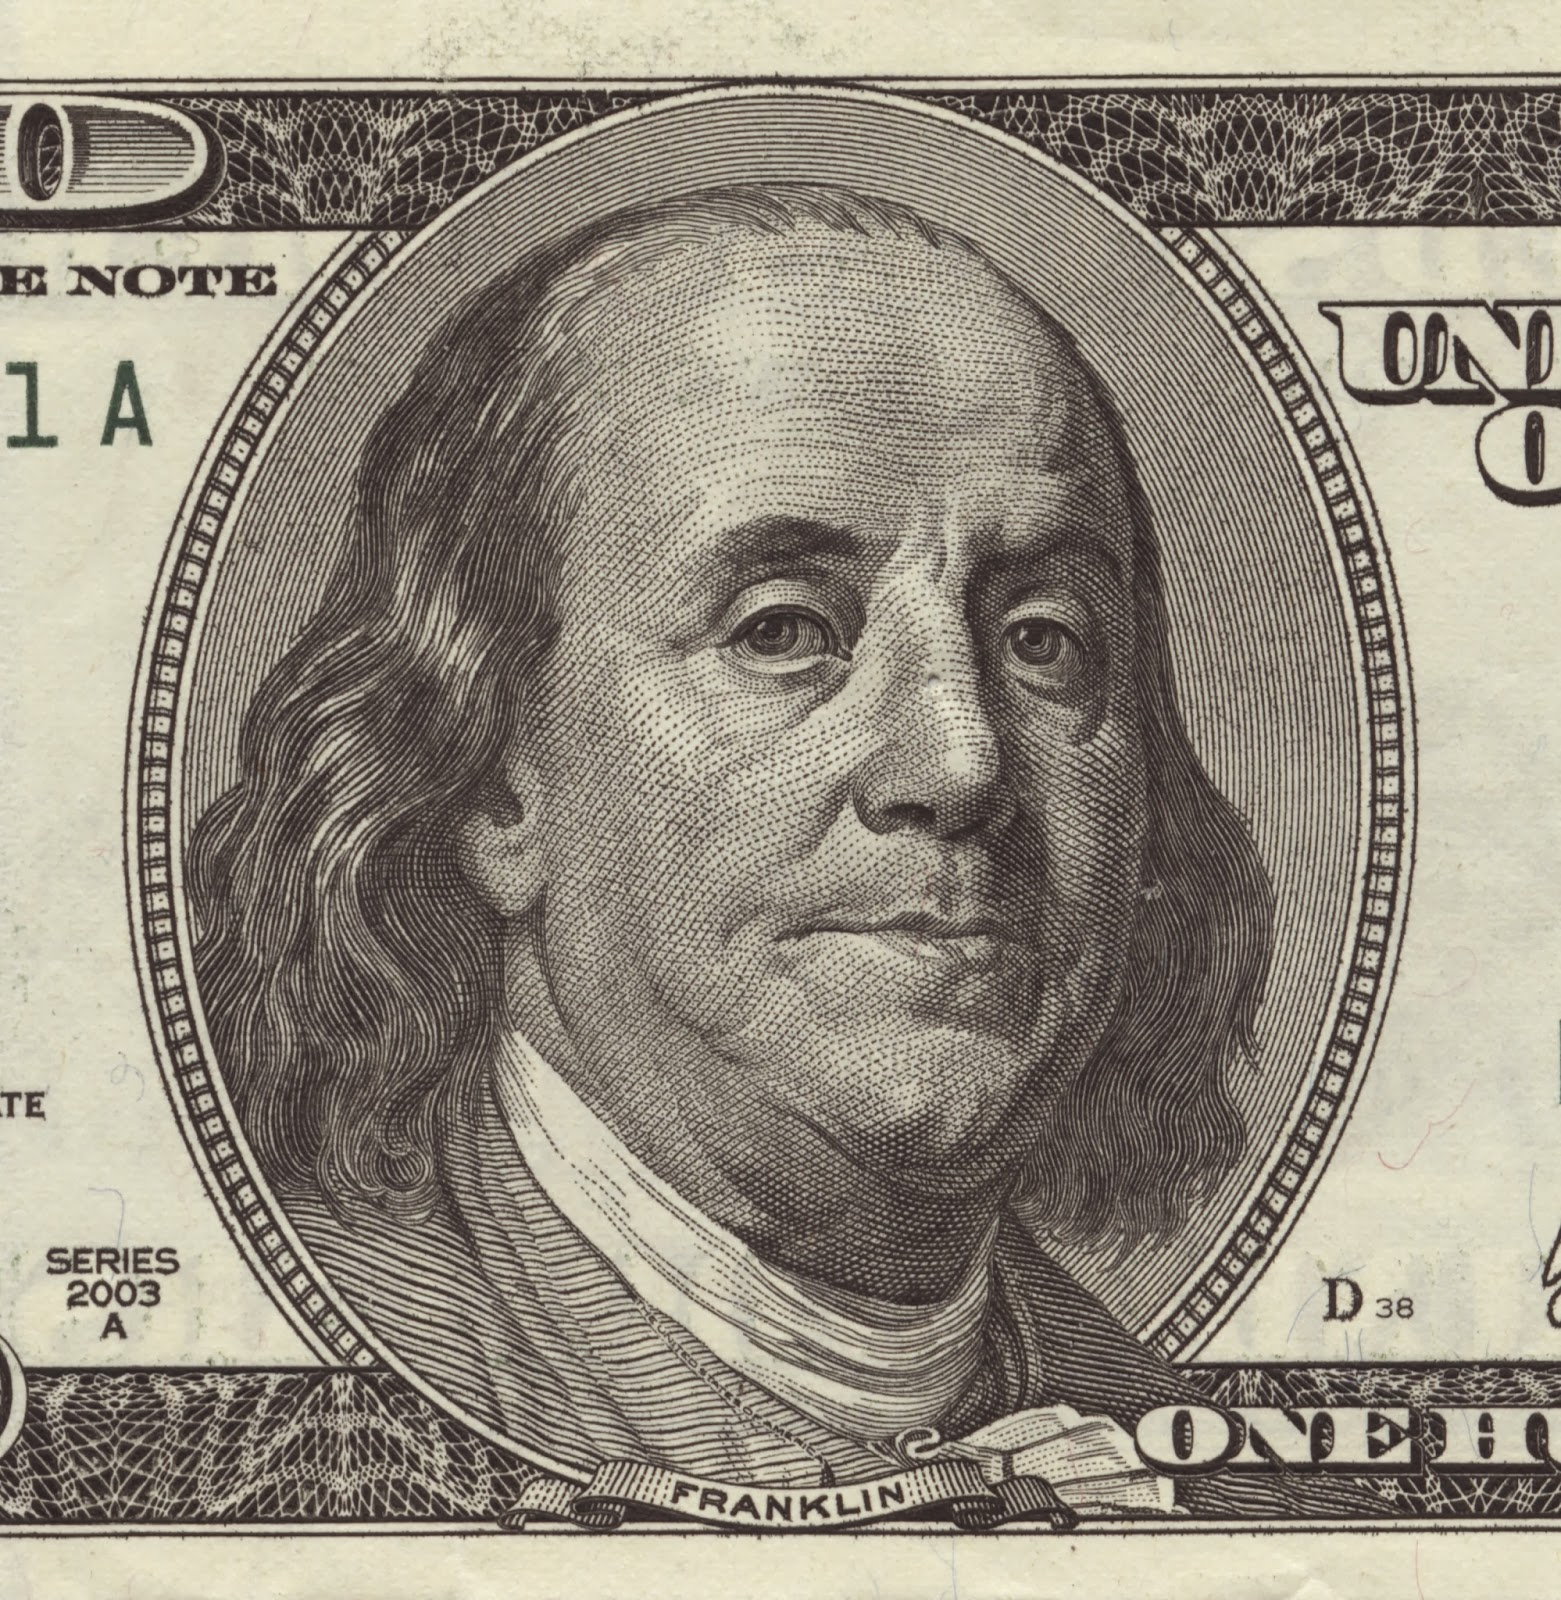 benjamin franklin essay on farts  benjamin franklin essay on farts